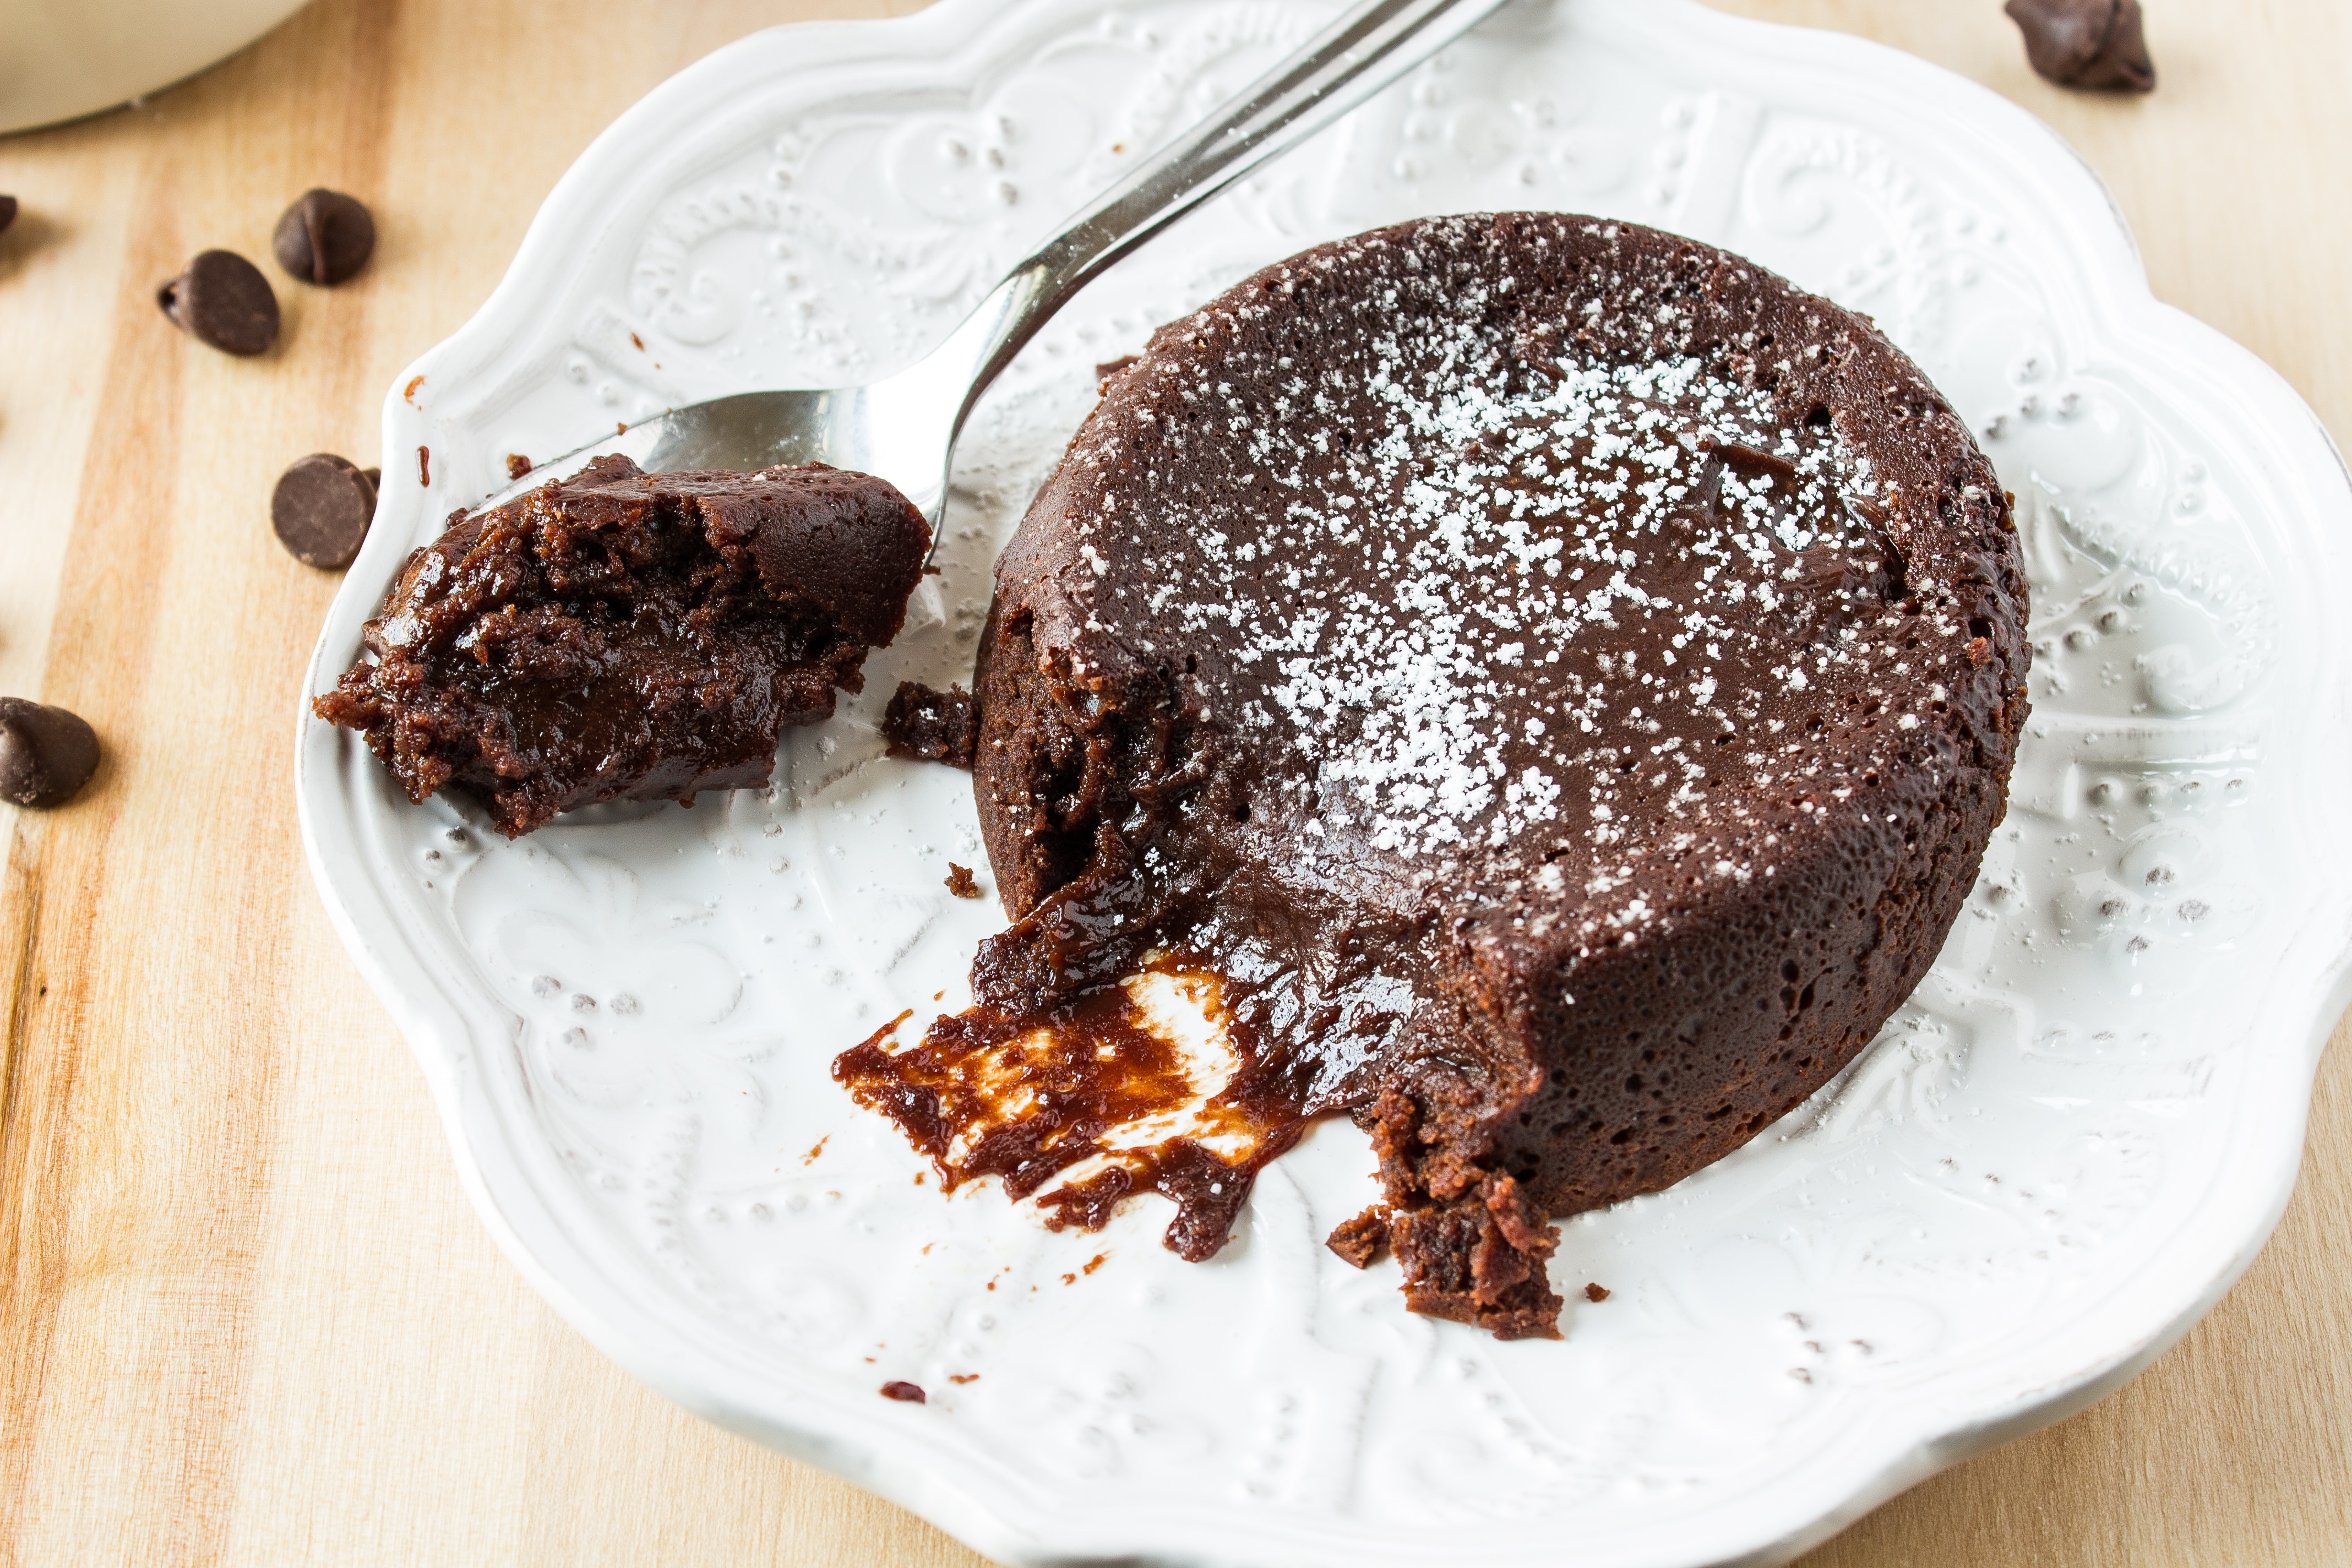 Molten Chocolate Cake - Dense chocolate cake that has a gooey molten lava center that will make your mouth water. It's a dessert that is sure to impress on your next date night or dinner party!